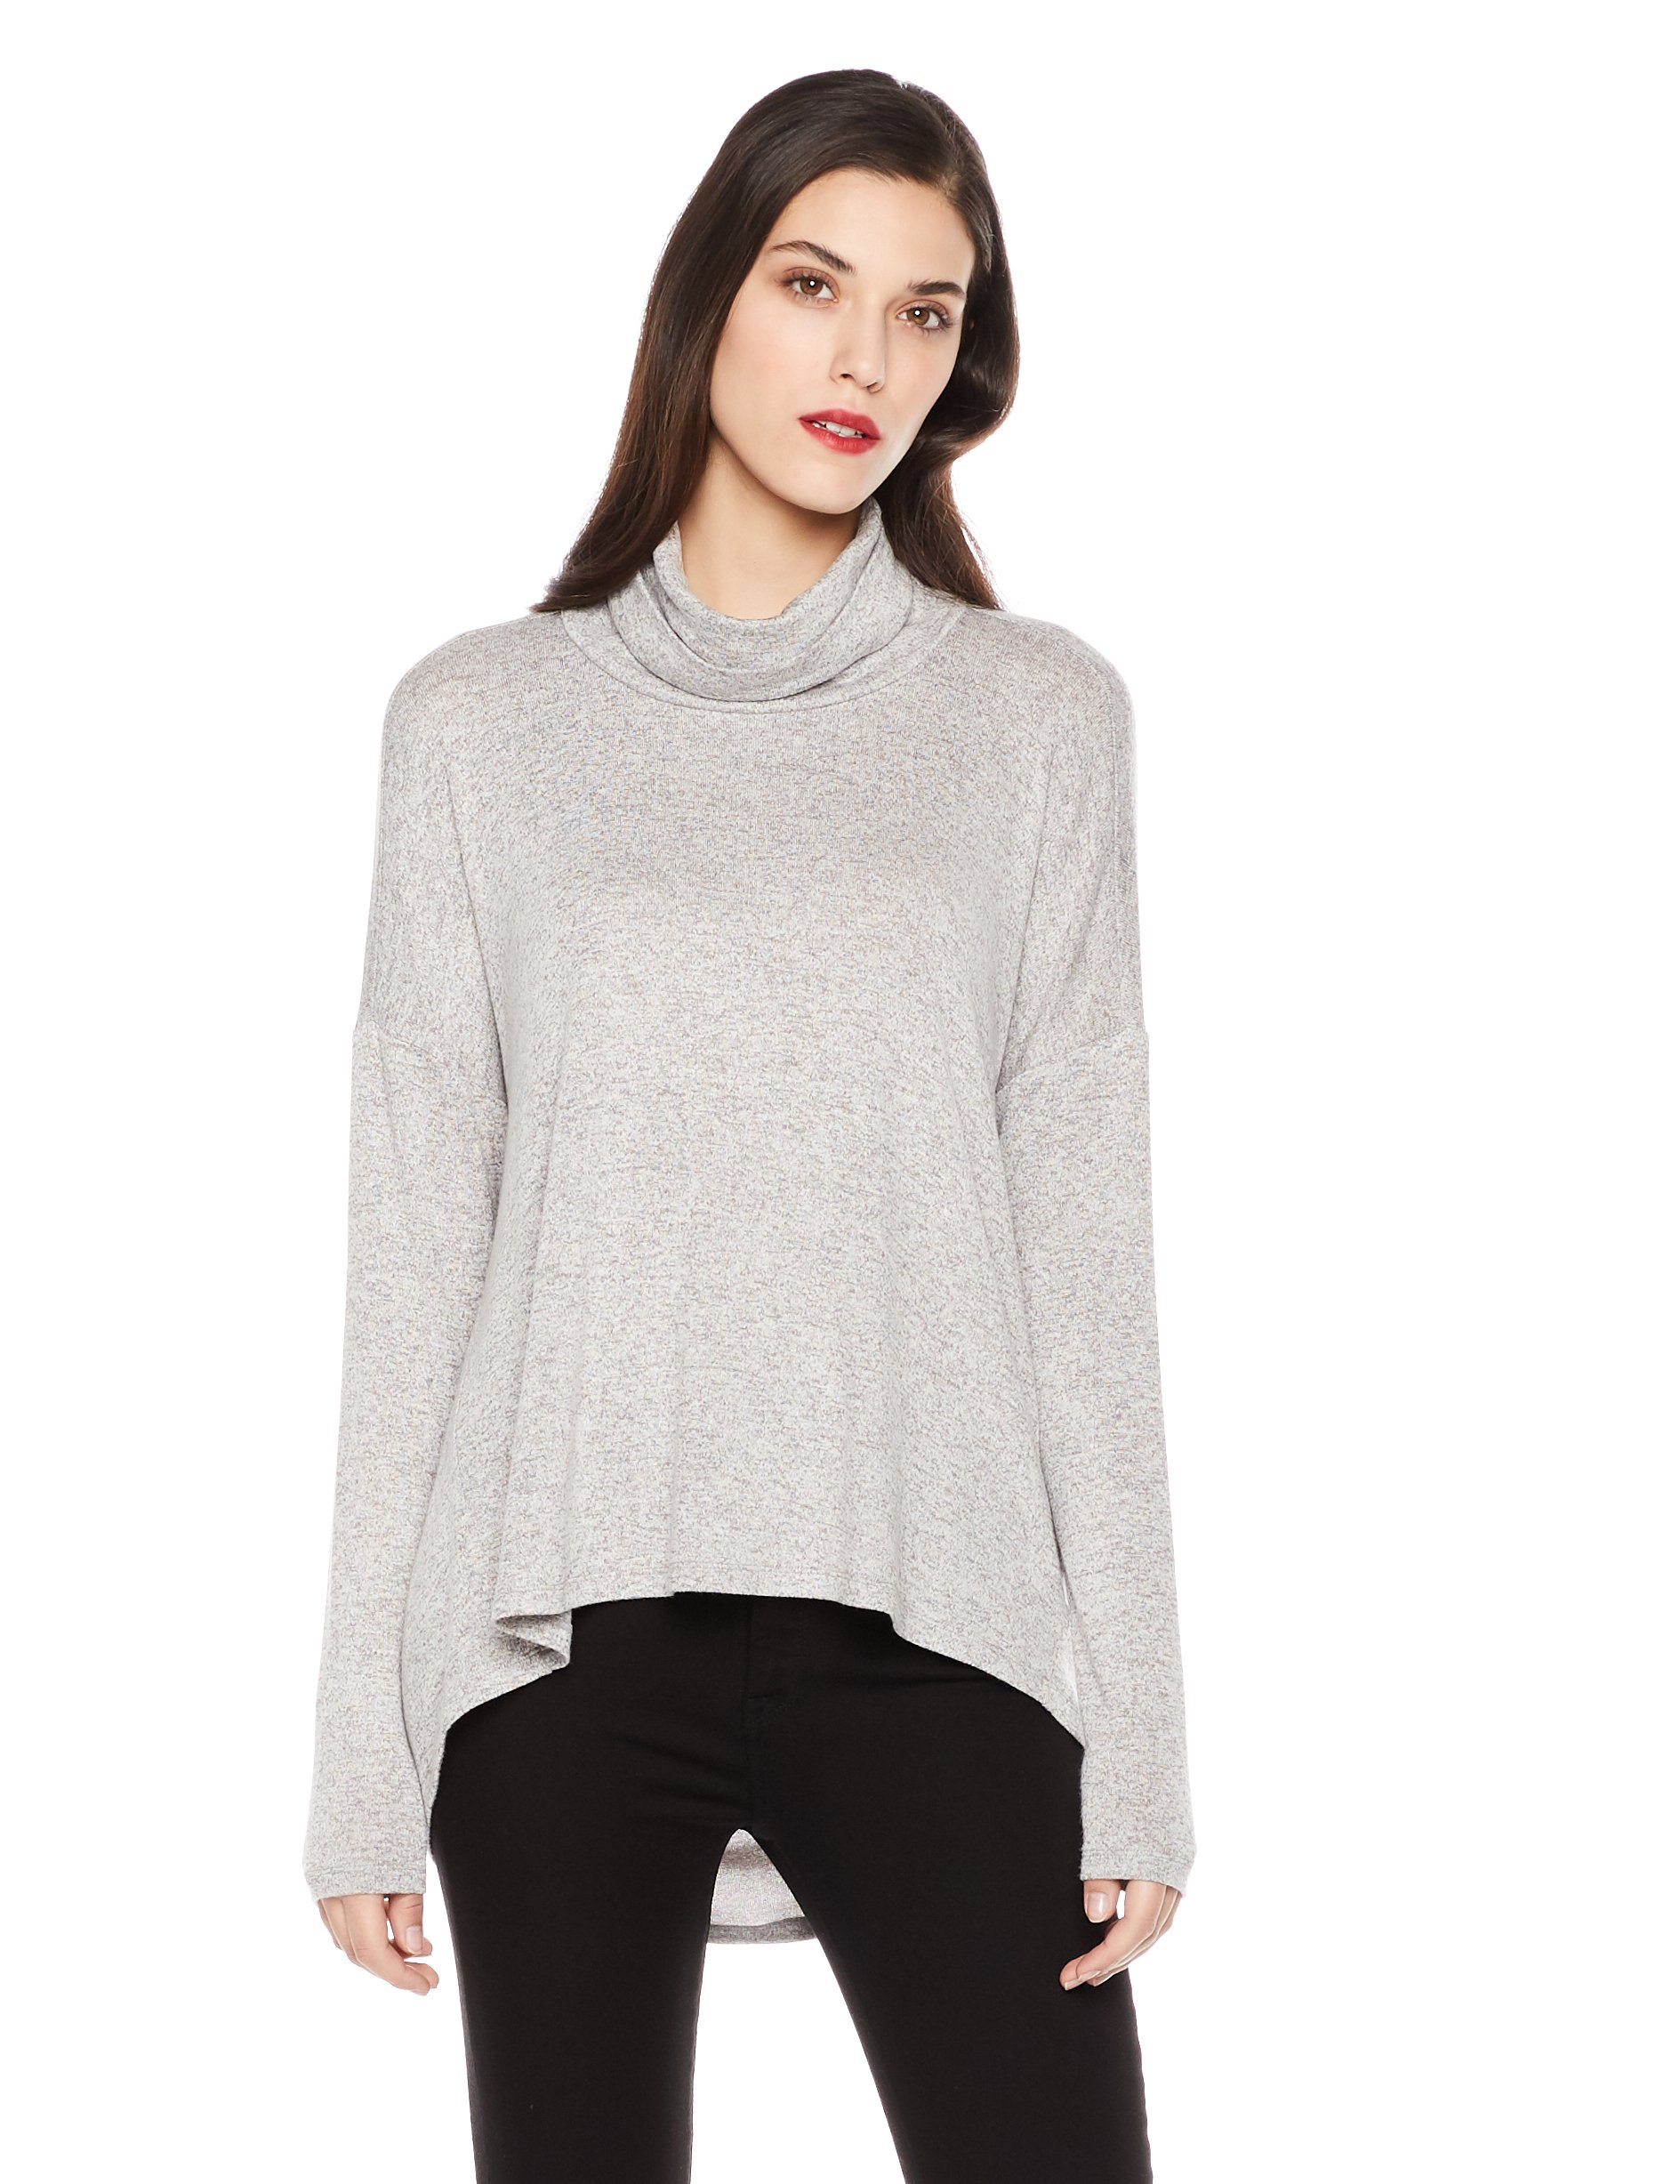 Mariella Bella Women's Long -Sleeve Relaxed-Fit Turtleneck/Cowl Neck Knit Top Large Light Grey Heather